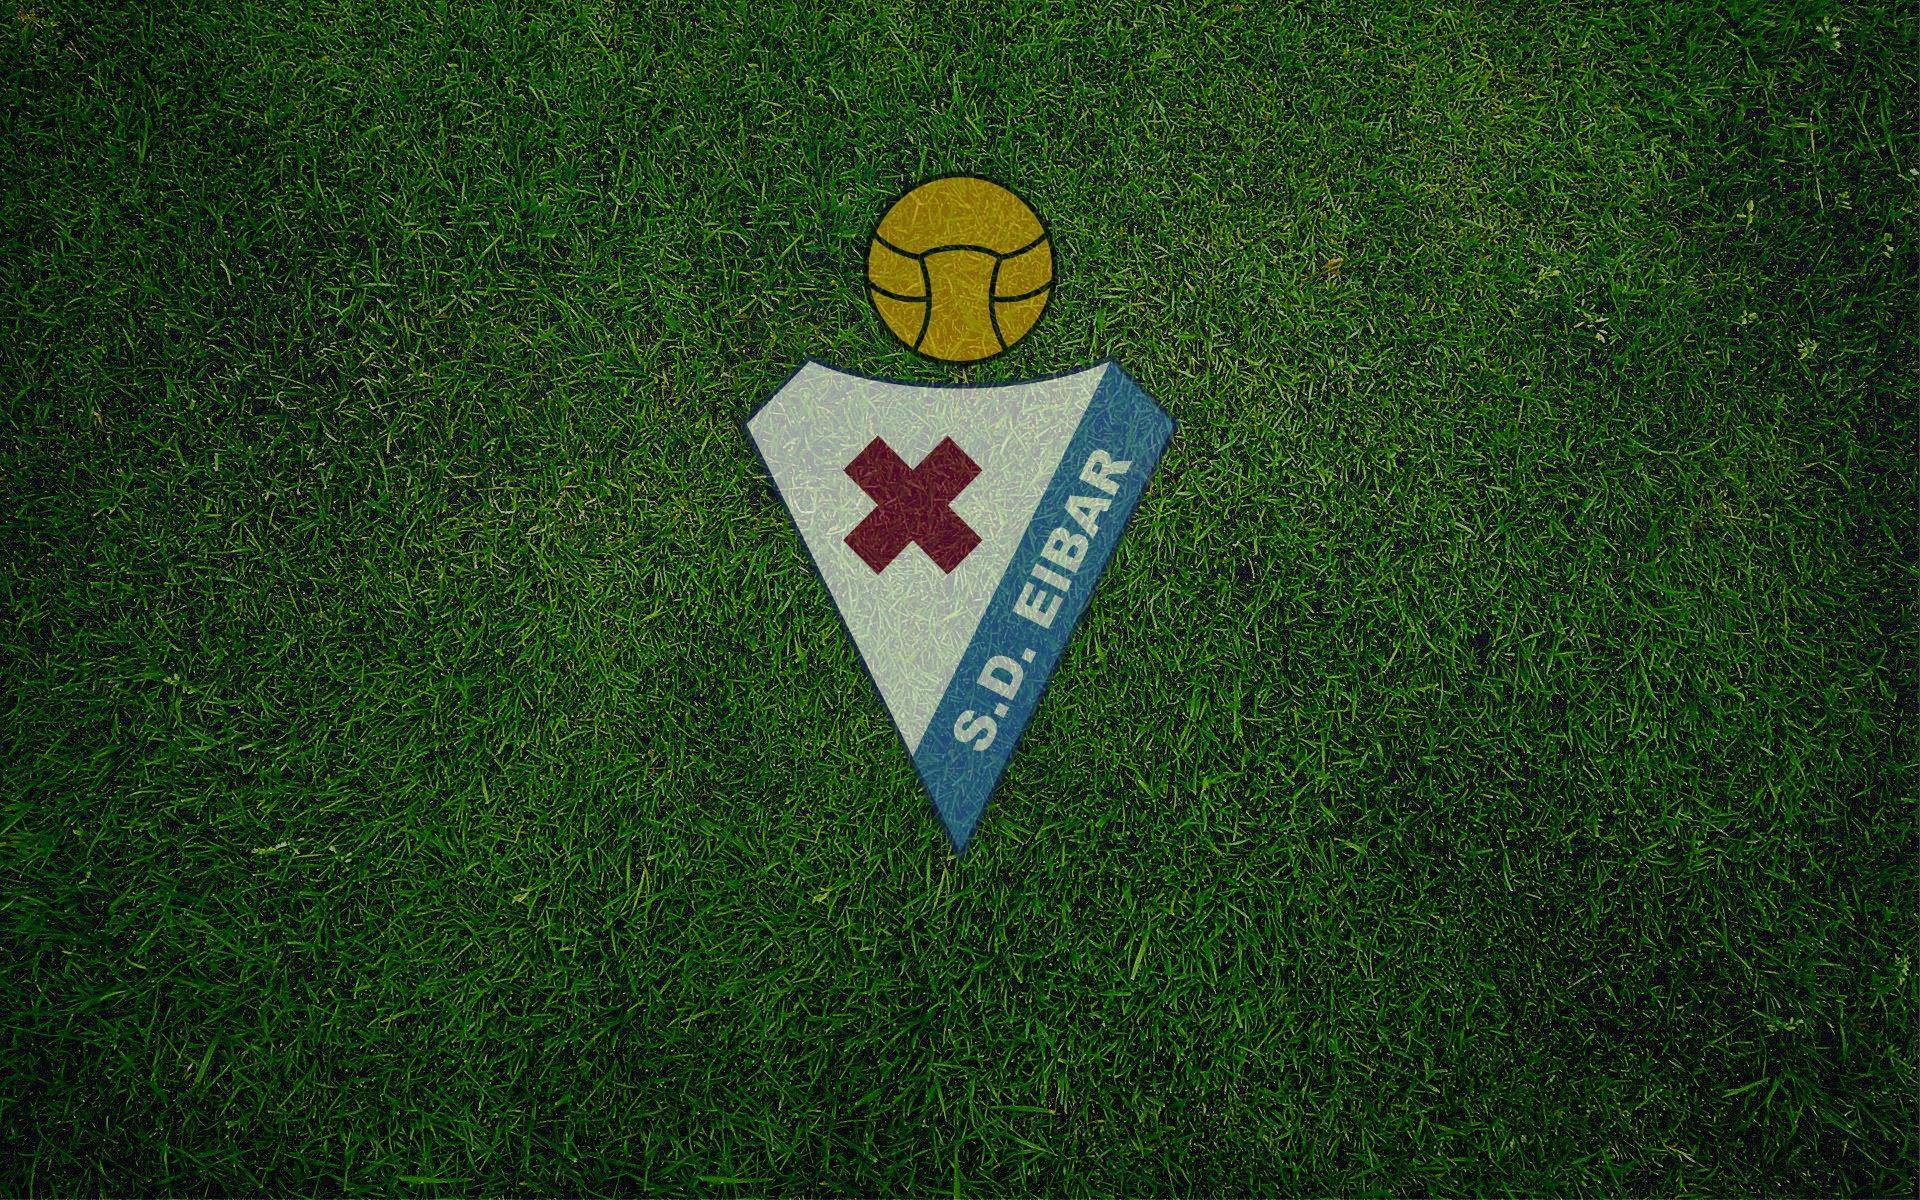 SD Eibar widescreen desktop wallpapers – 1920×1200 – Logos Download